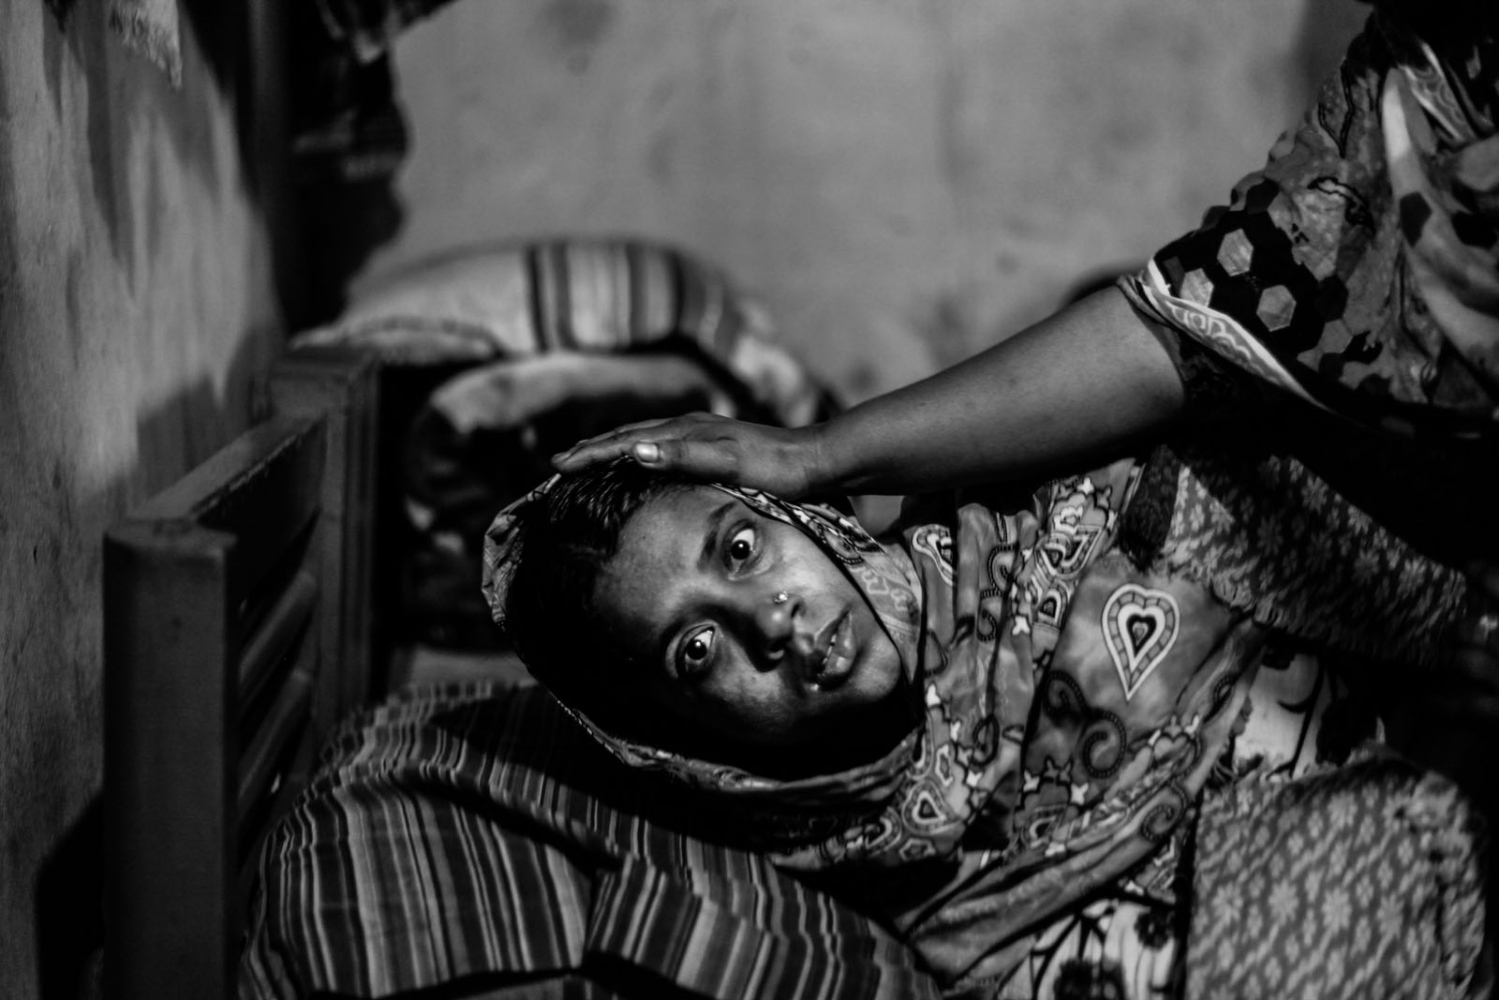 Tahera Begum, 25, who survived a devastating fire in a garment factory, lies inside her slum room in Savar. Begum, an operator of Tazreen Fashions garment factory, escaped the fire which killed more than 100 workers on November 24. According to Begum's husband, she became mentally ill and lost her memory after escaping the fire.